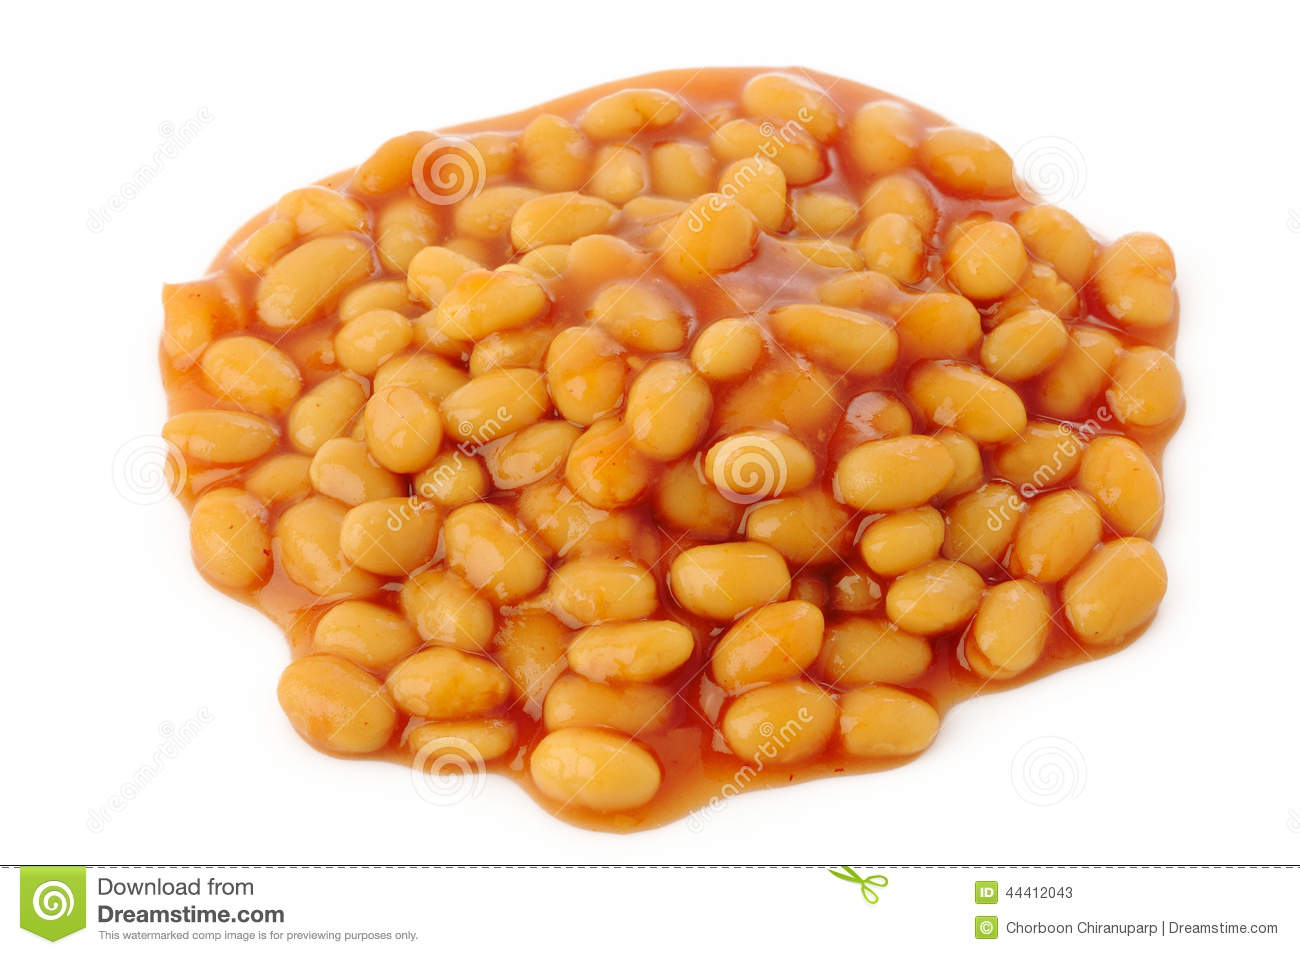 Baked Beans In Tomato Sauce Stock Photo - Image: 44412043